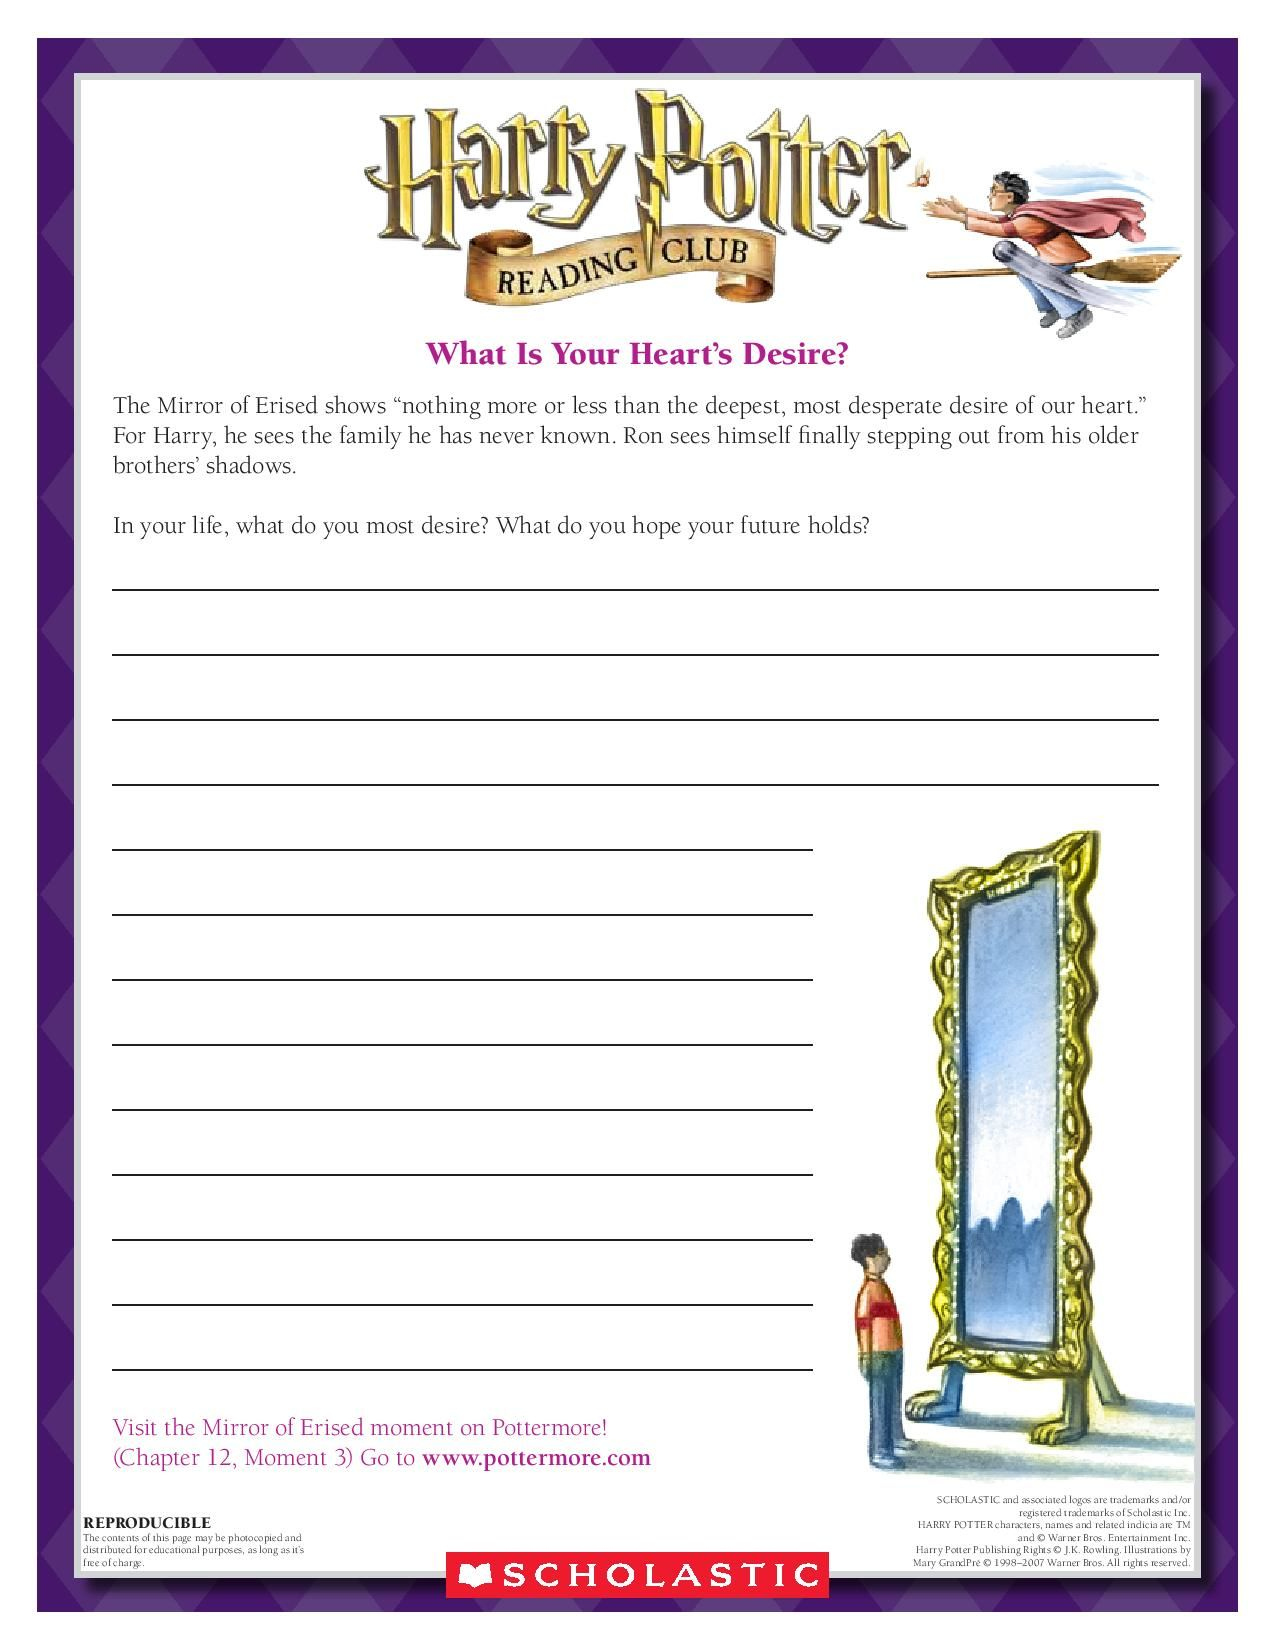 Creative Writing Exercise Reflect On Your Dreams And Desires For The Future Download By